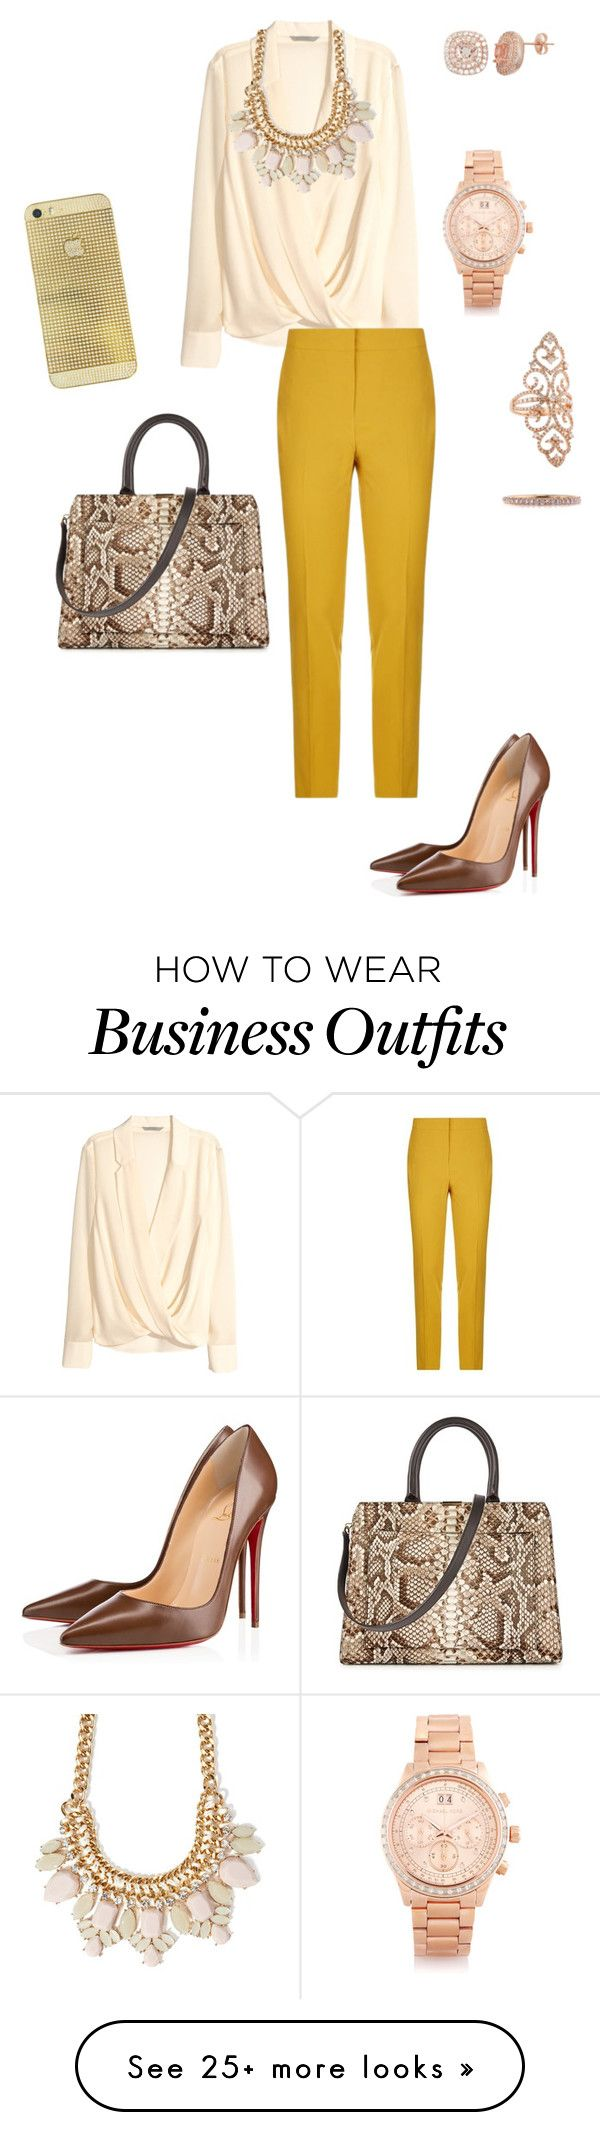 """Work Wear 3"" by jerbee04 on Polyvore featuring H&M, Pinko, Forever 21, Christian Louboutin, Victoria Beckham, Michael Kors and Mark Broumand"